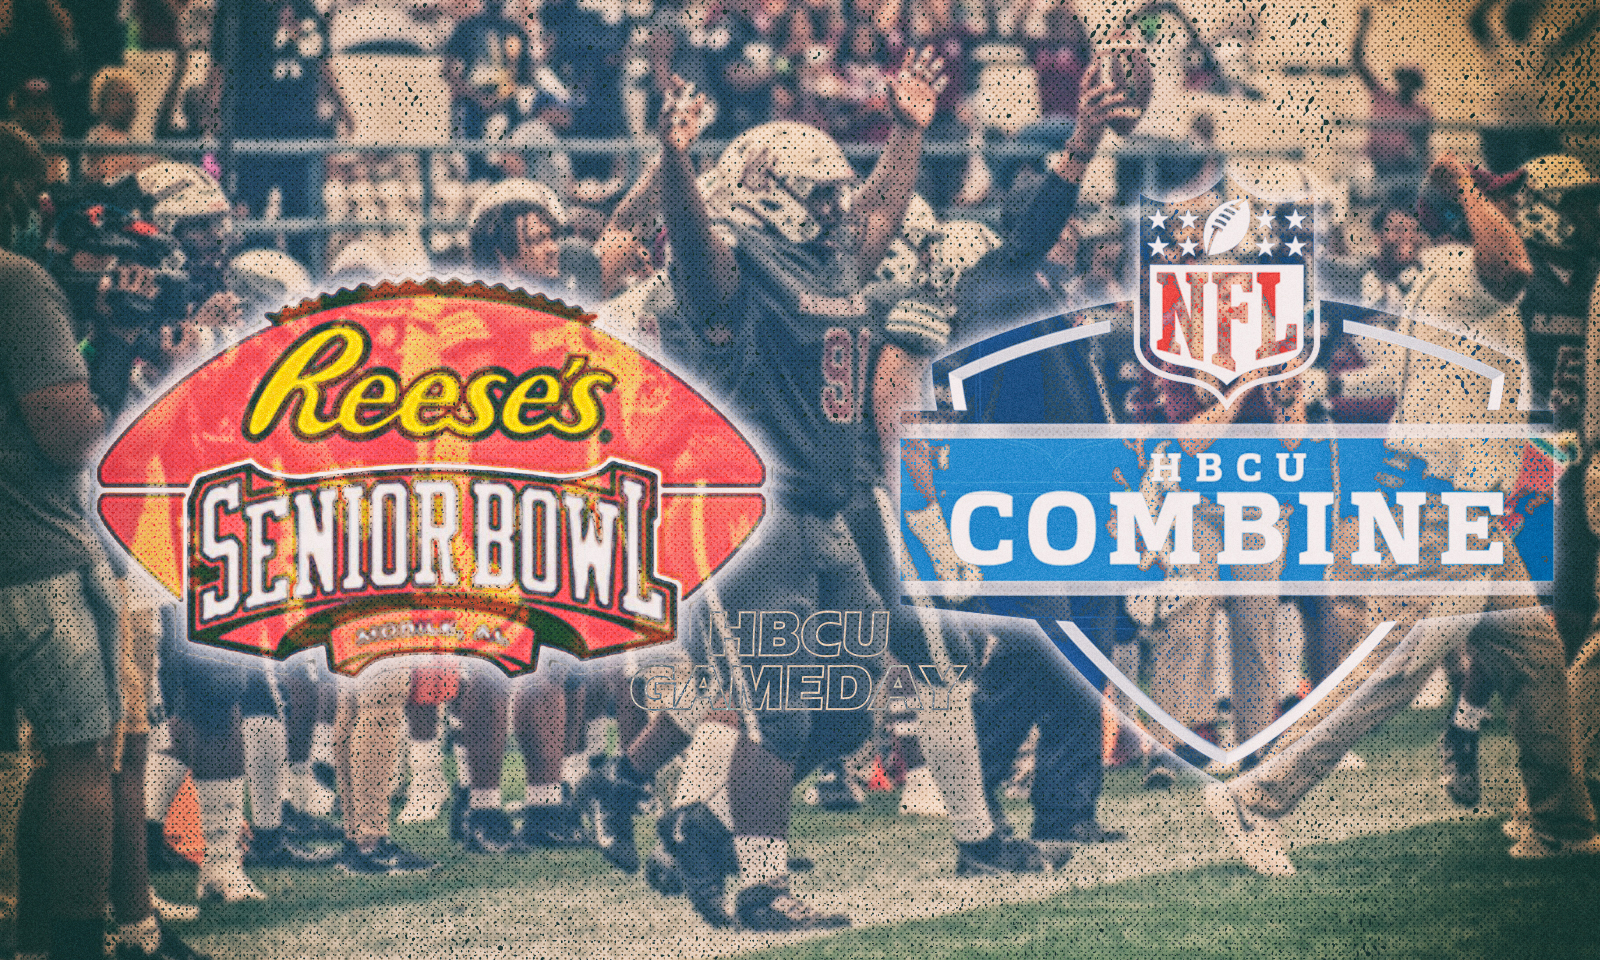 Senior Bowl and NFL to Hold Combine for Top Players from HBCUs in January 2022